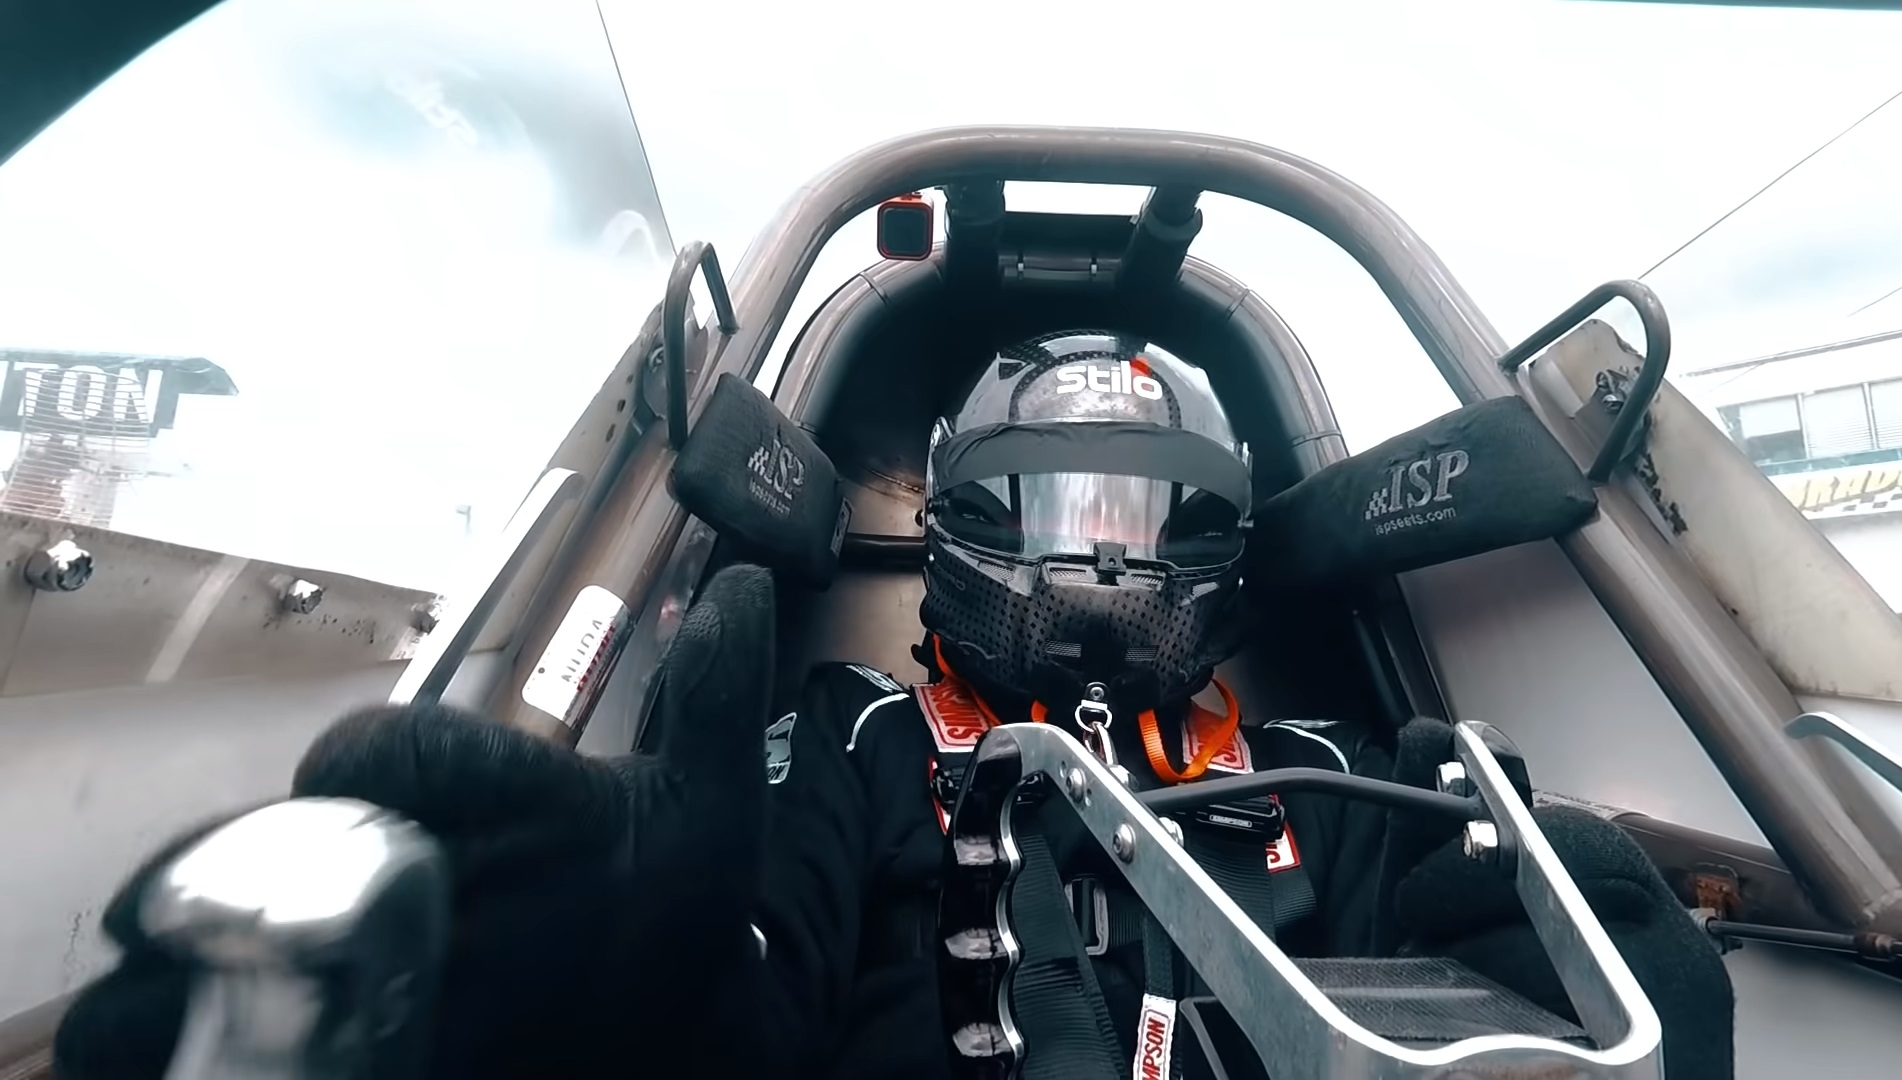 Tony Stewart's latest challenge: Frank Hawley's Drag Racing School